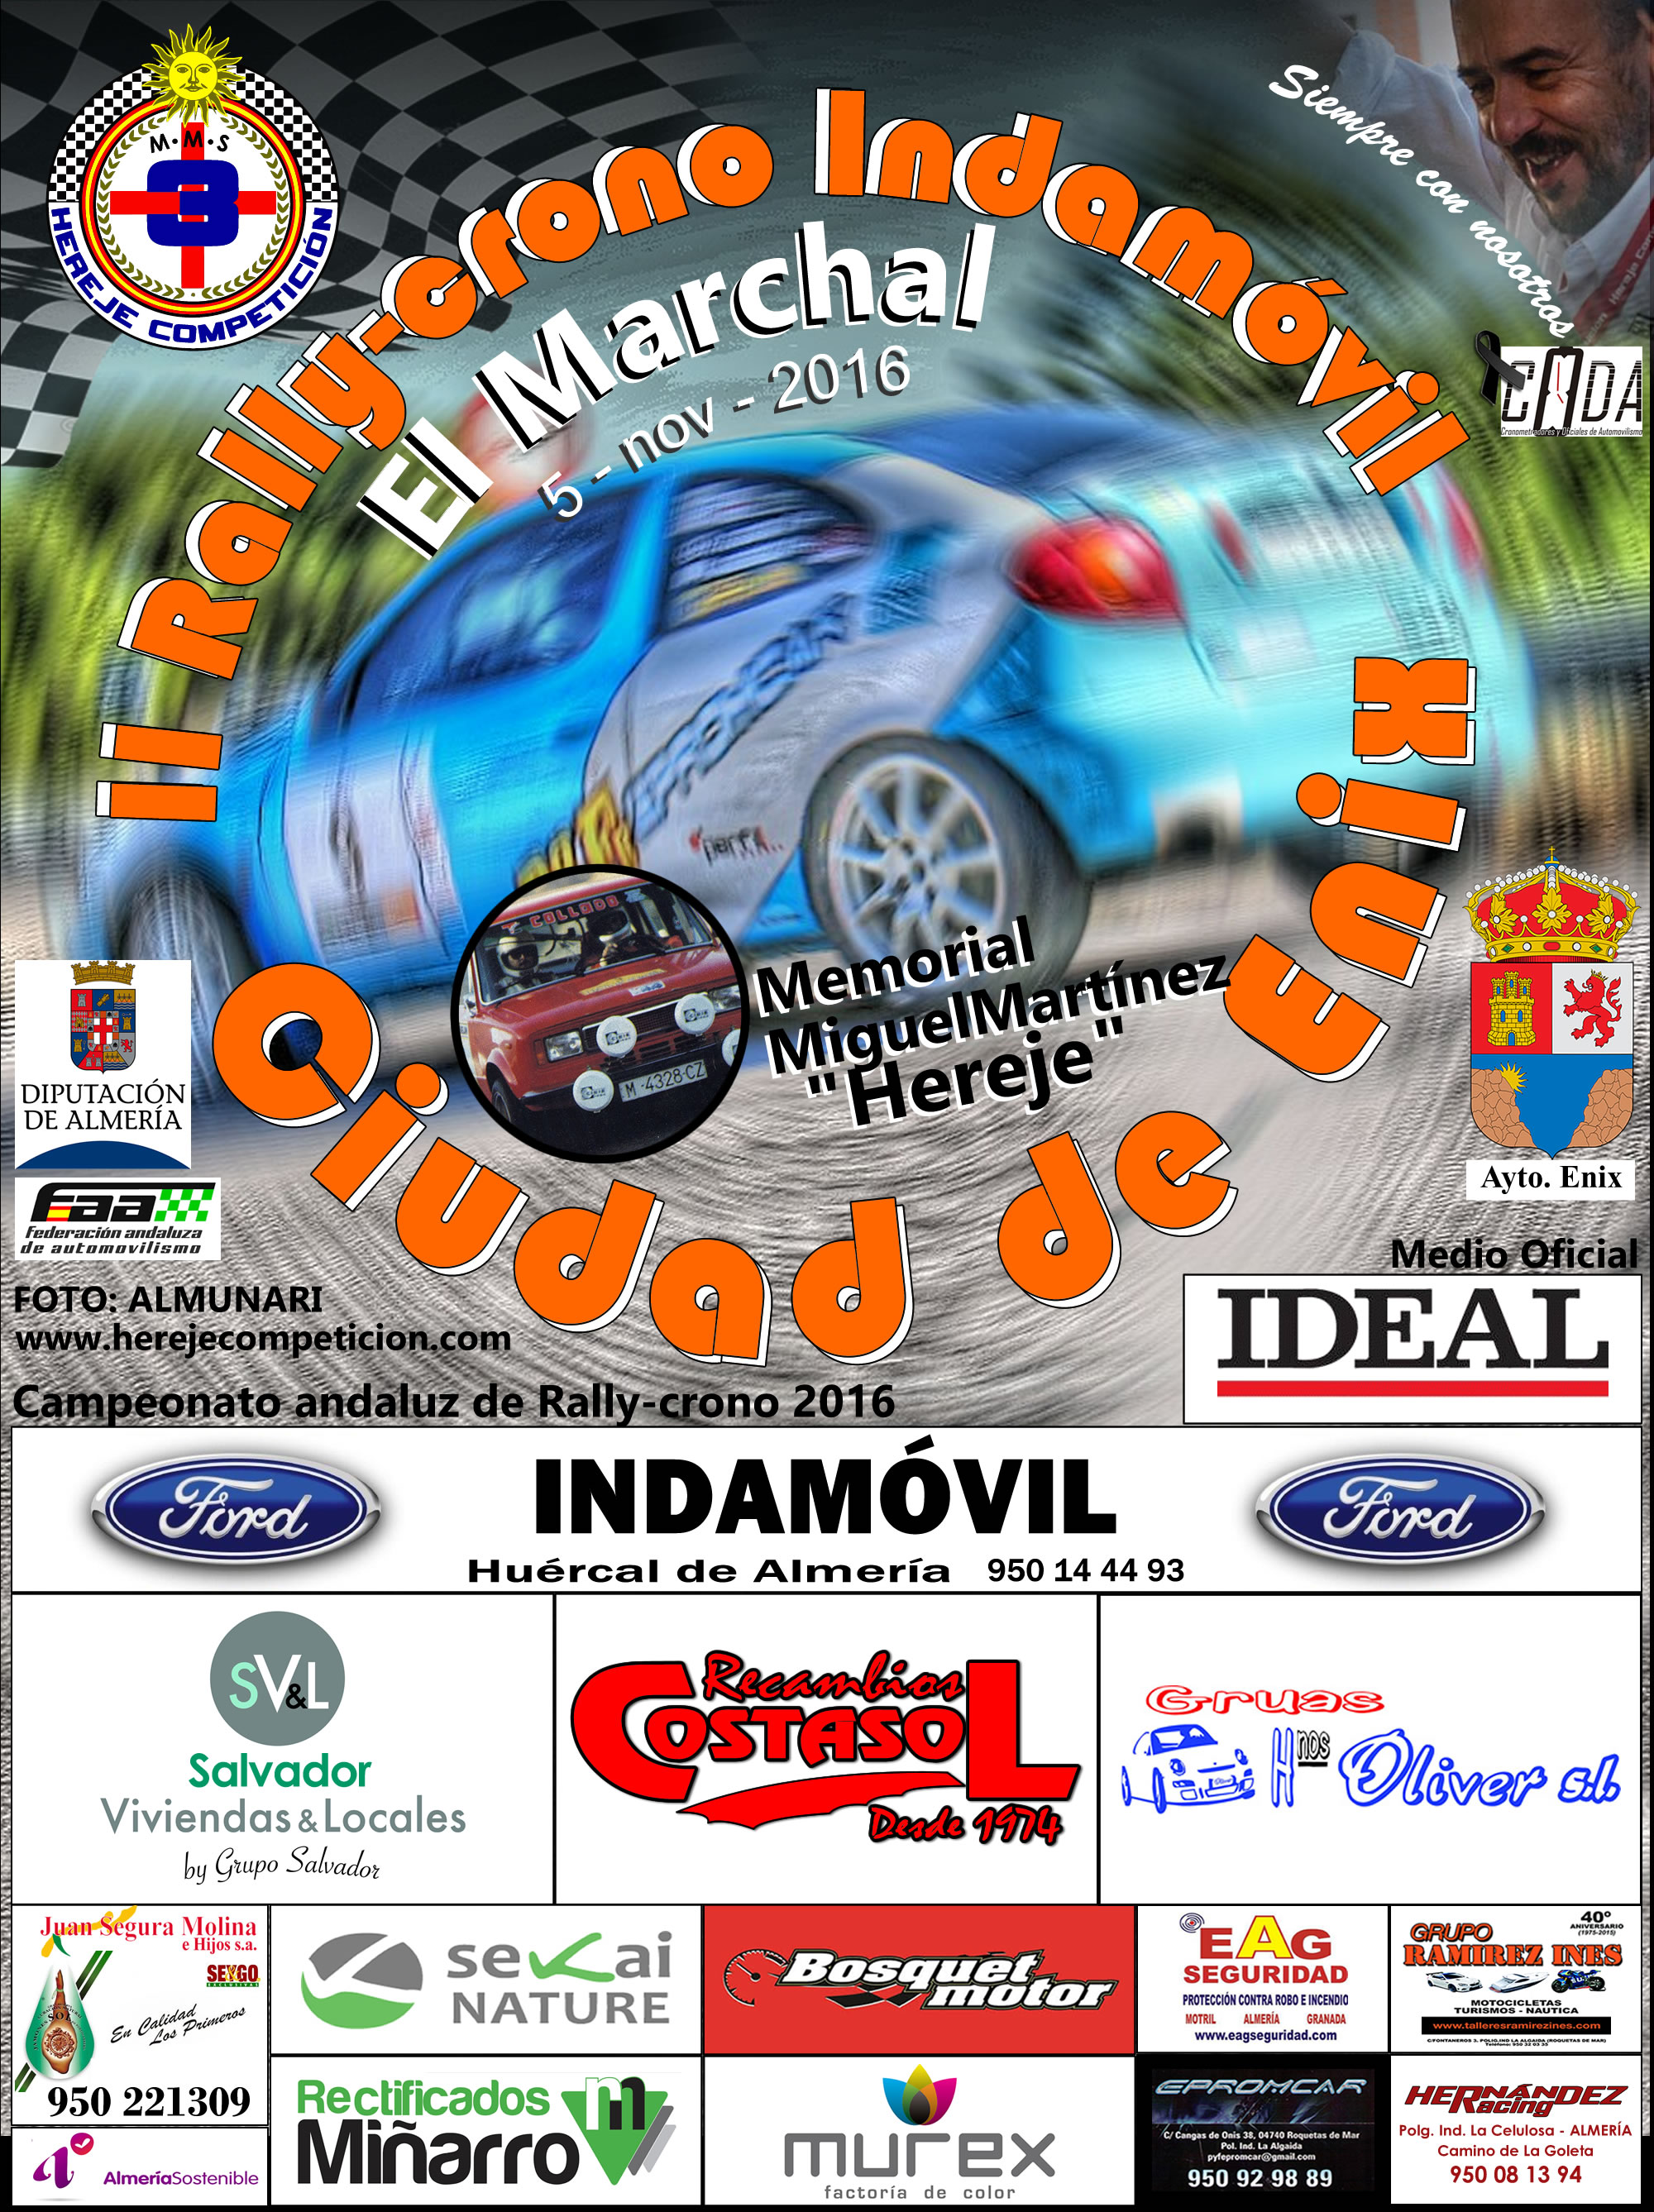 I Rally-crono Hereje Competicion